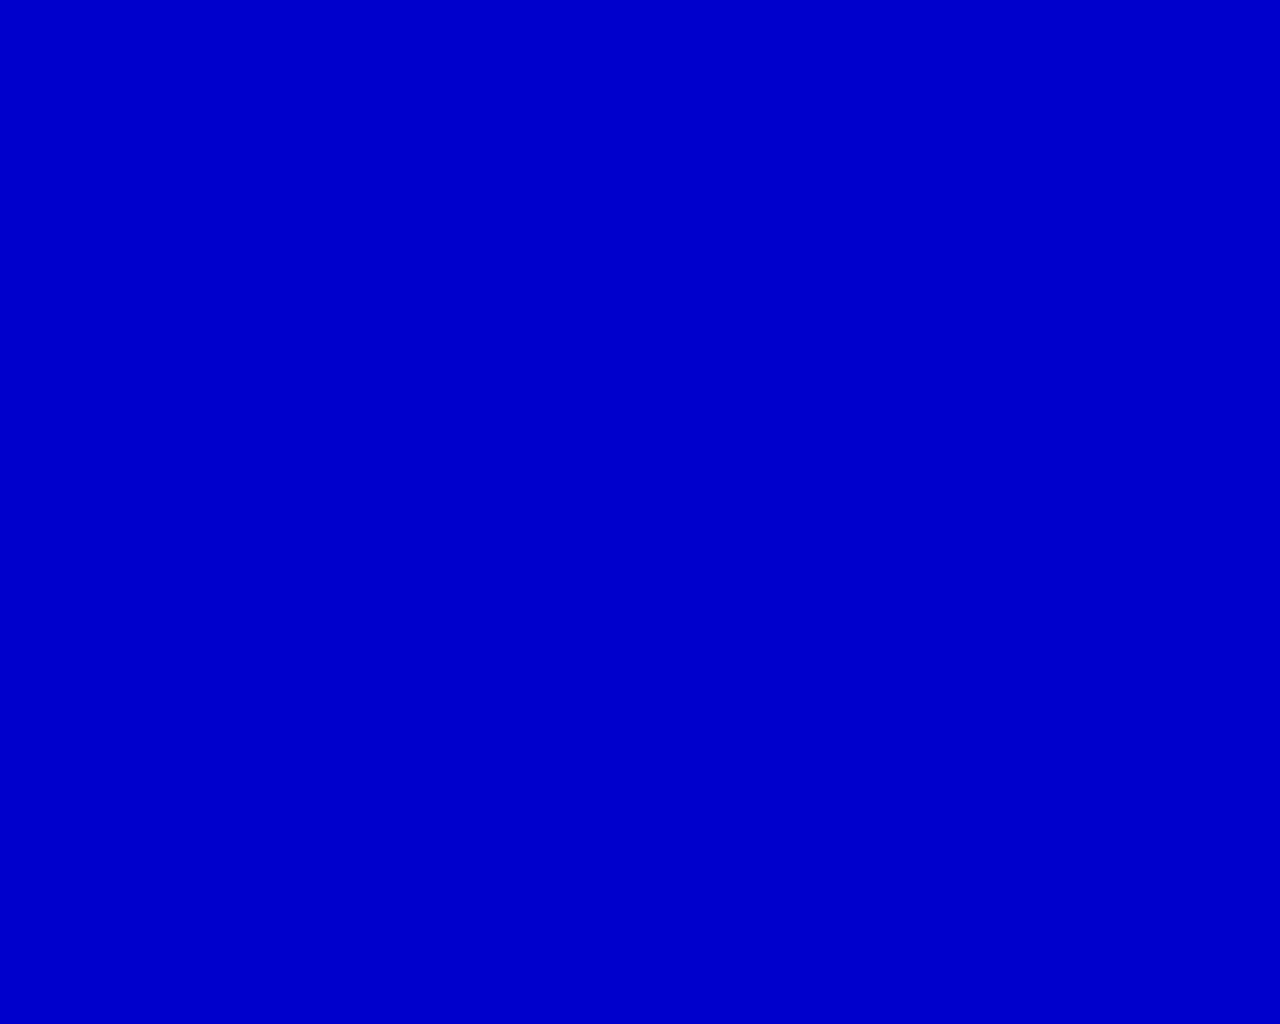 1280x1024 Medium Blue Solid Color Background